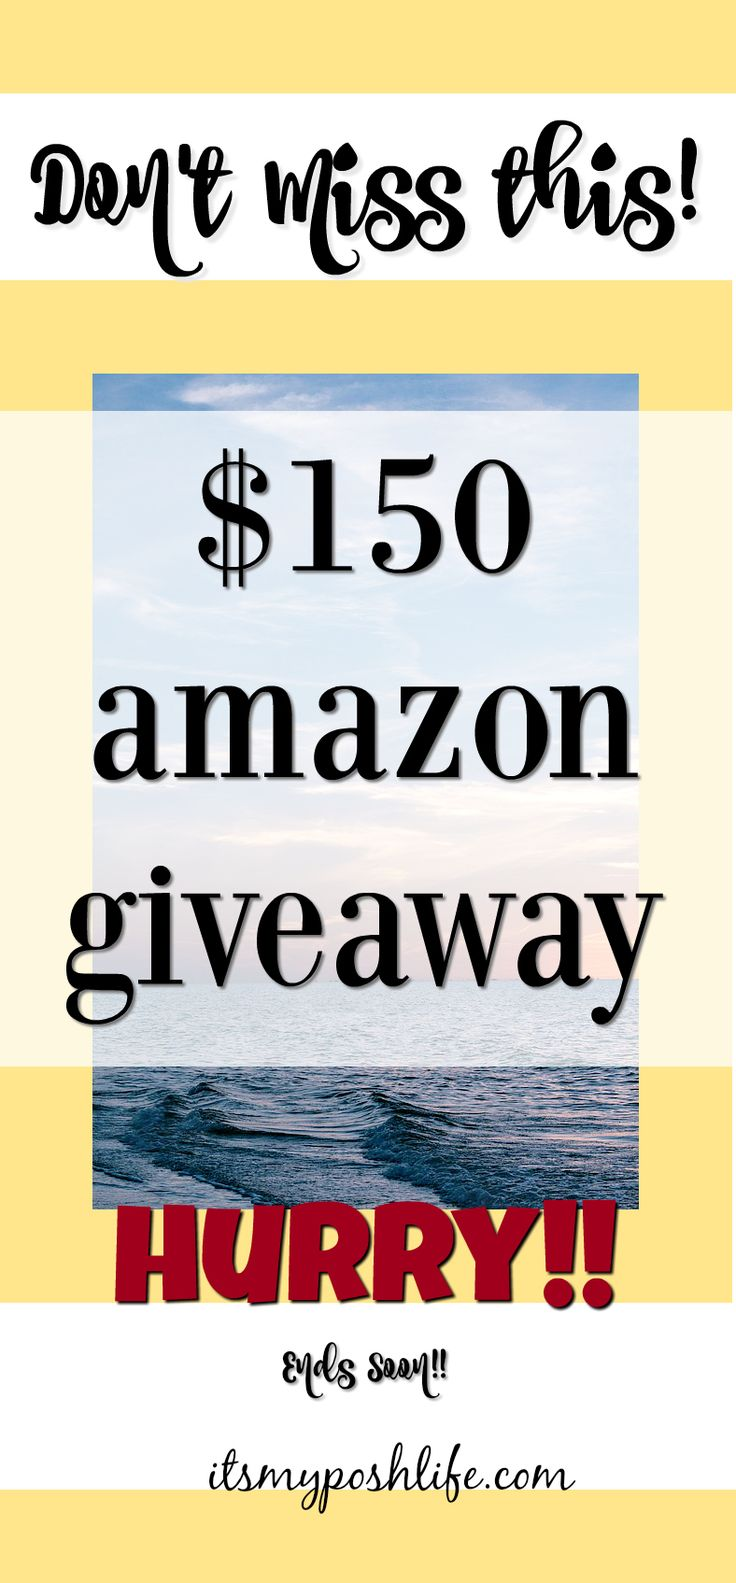 Ends soon!!! What would you do with $150 to AMAZON?? http://poshonabudget.com/2017/01/150-amazon-giveaway-ww.html#